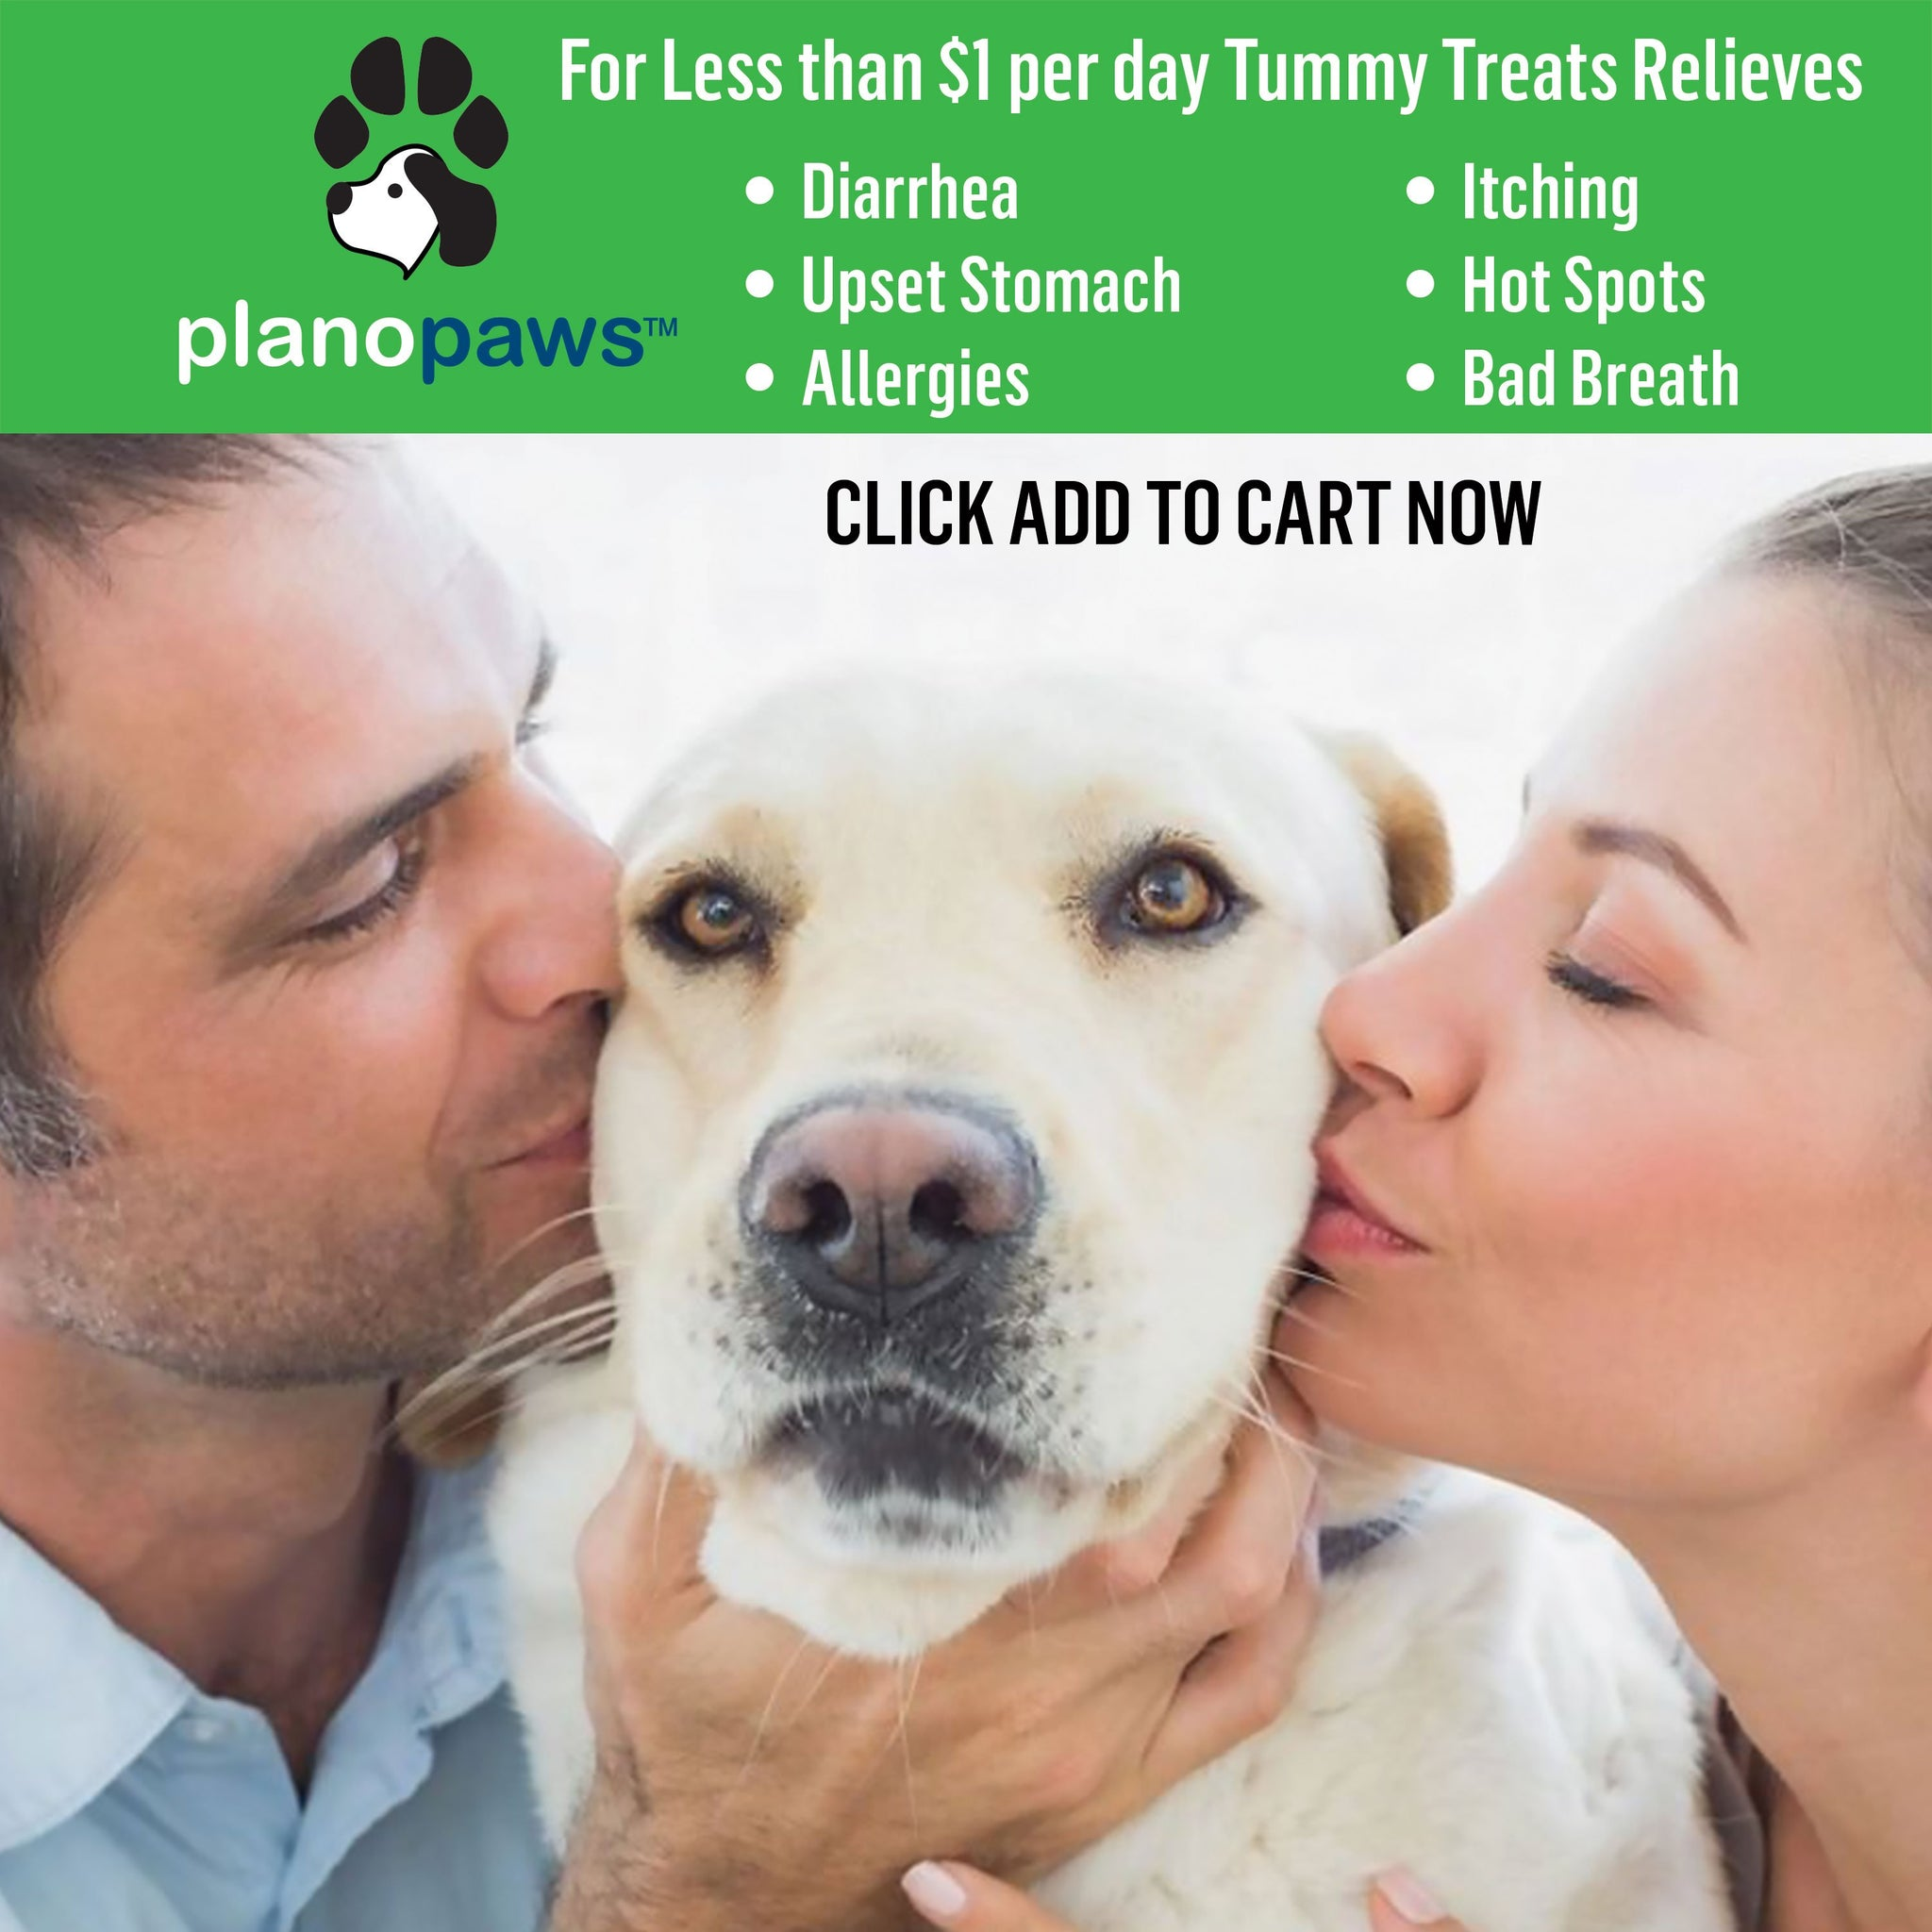 Tummy Treats, Probiotics for Dogs, Helps Diarrhea, Bad Breath, Gas | Dog Food Allergy Bad Breath